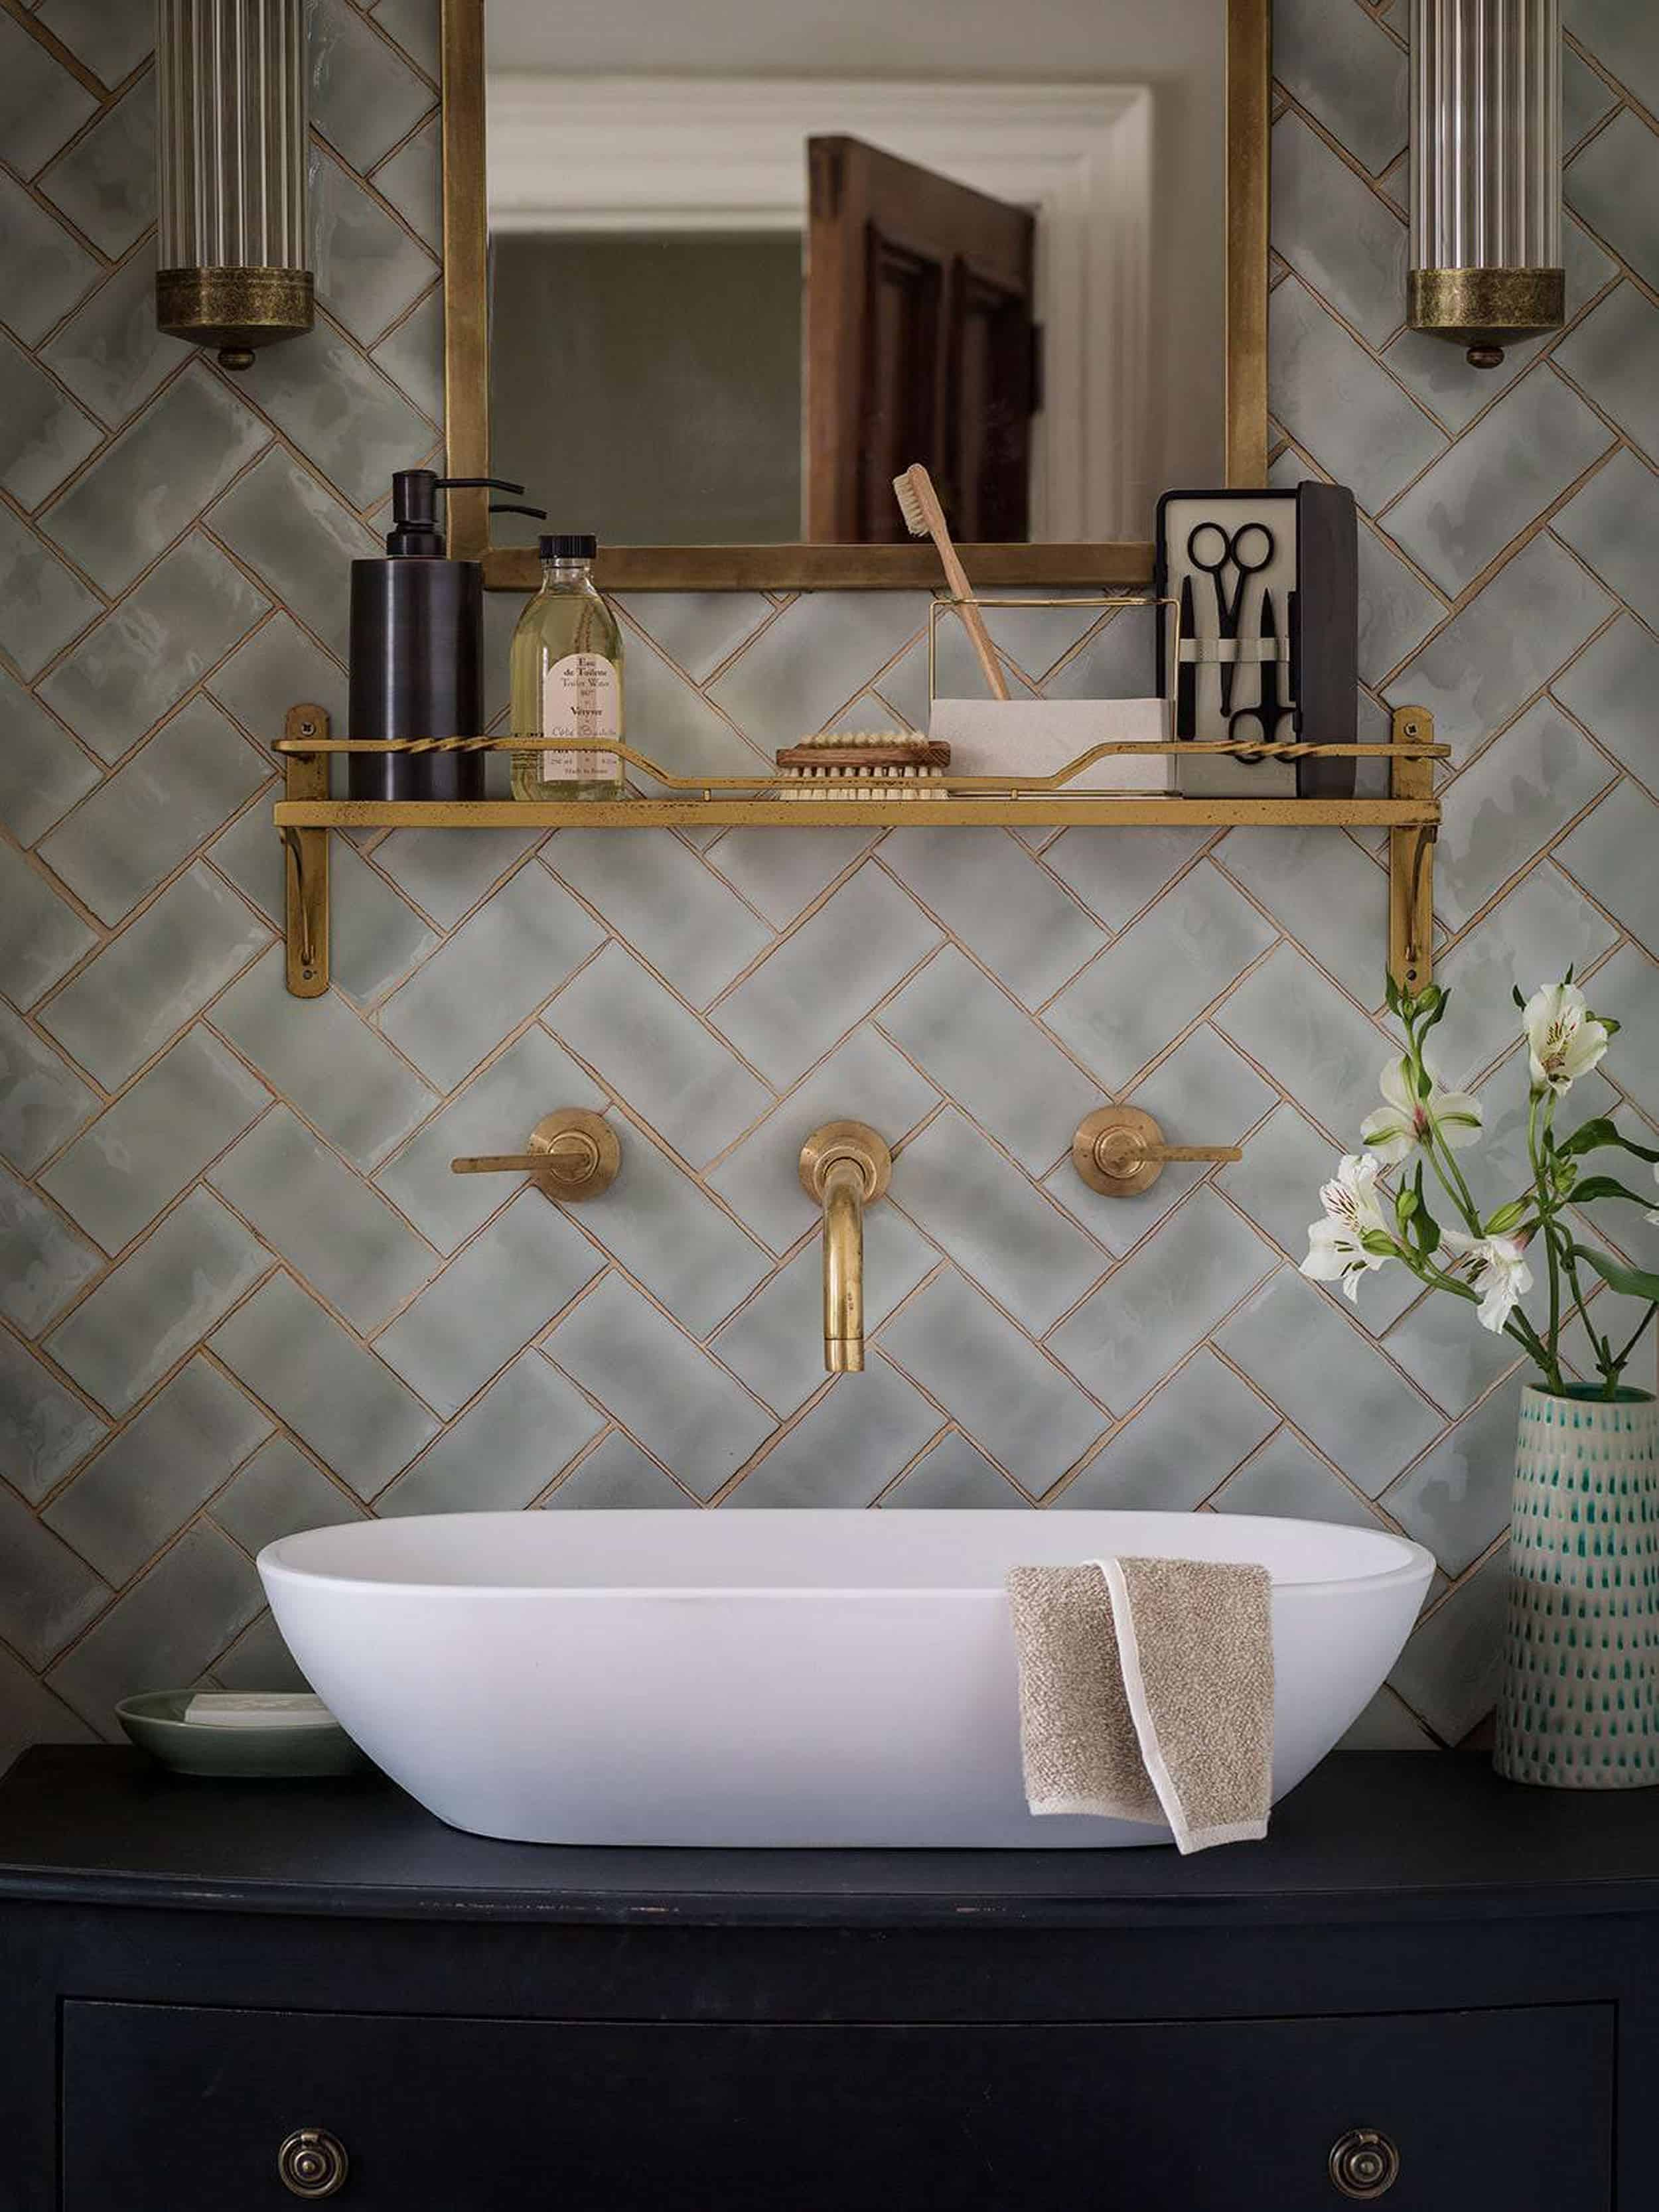 Image of: Let S Talk Vessel Sinks Wall Mount Faucets Emily Henderson